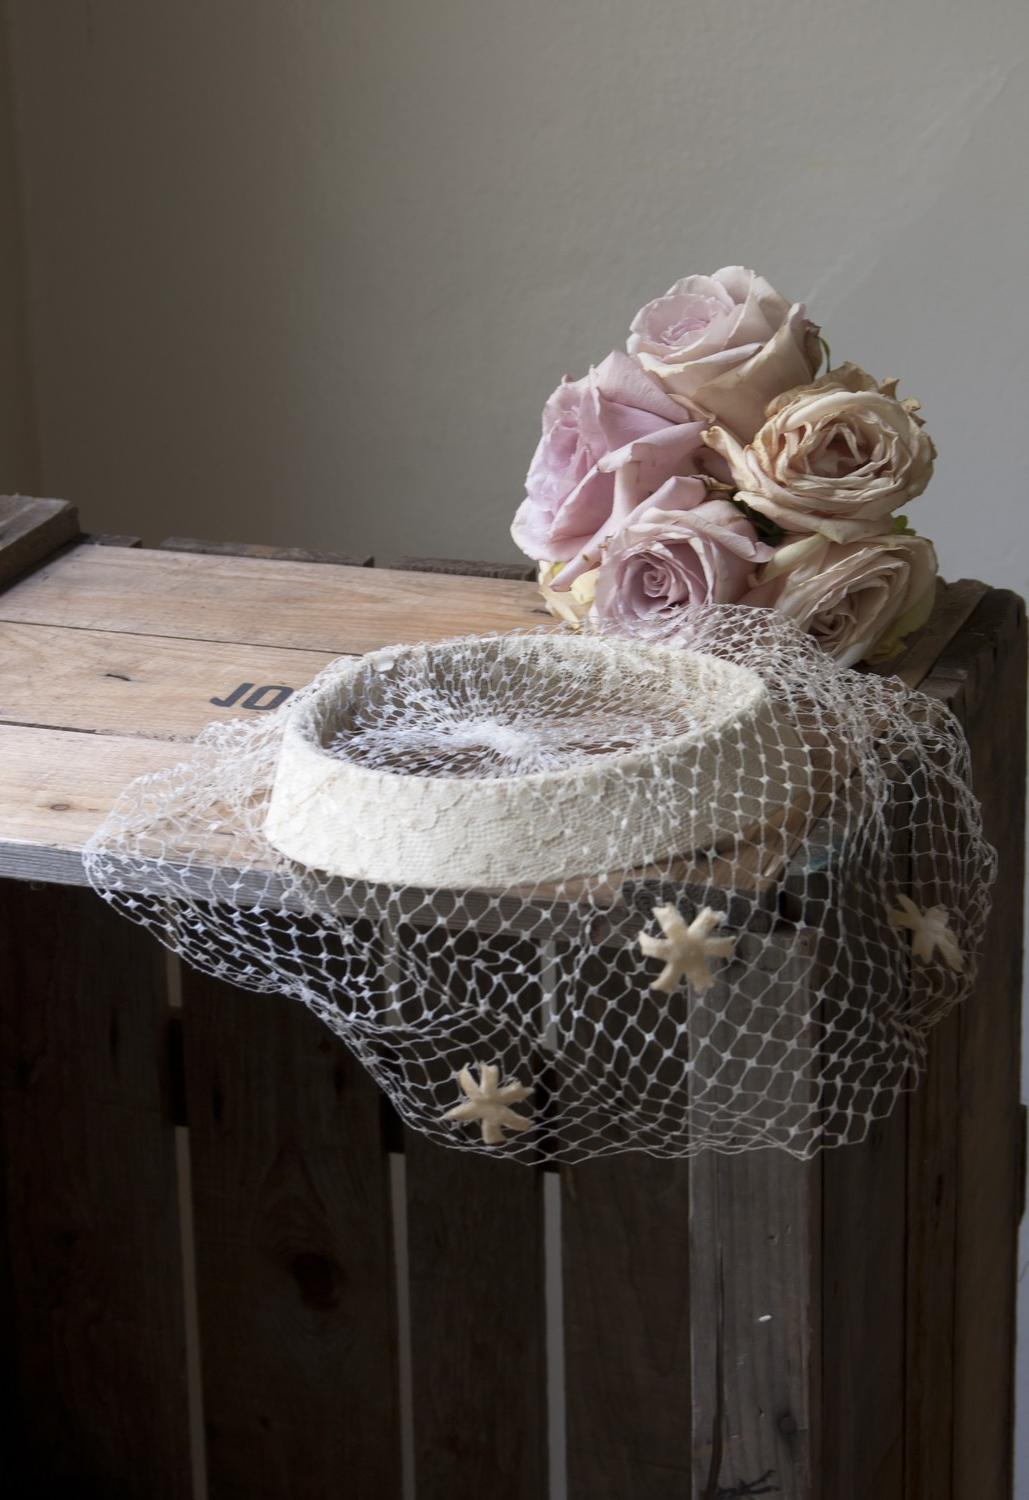 farmhouse weddings. vintage wedding veil. From cottagefarm